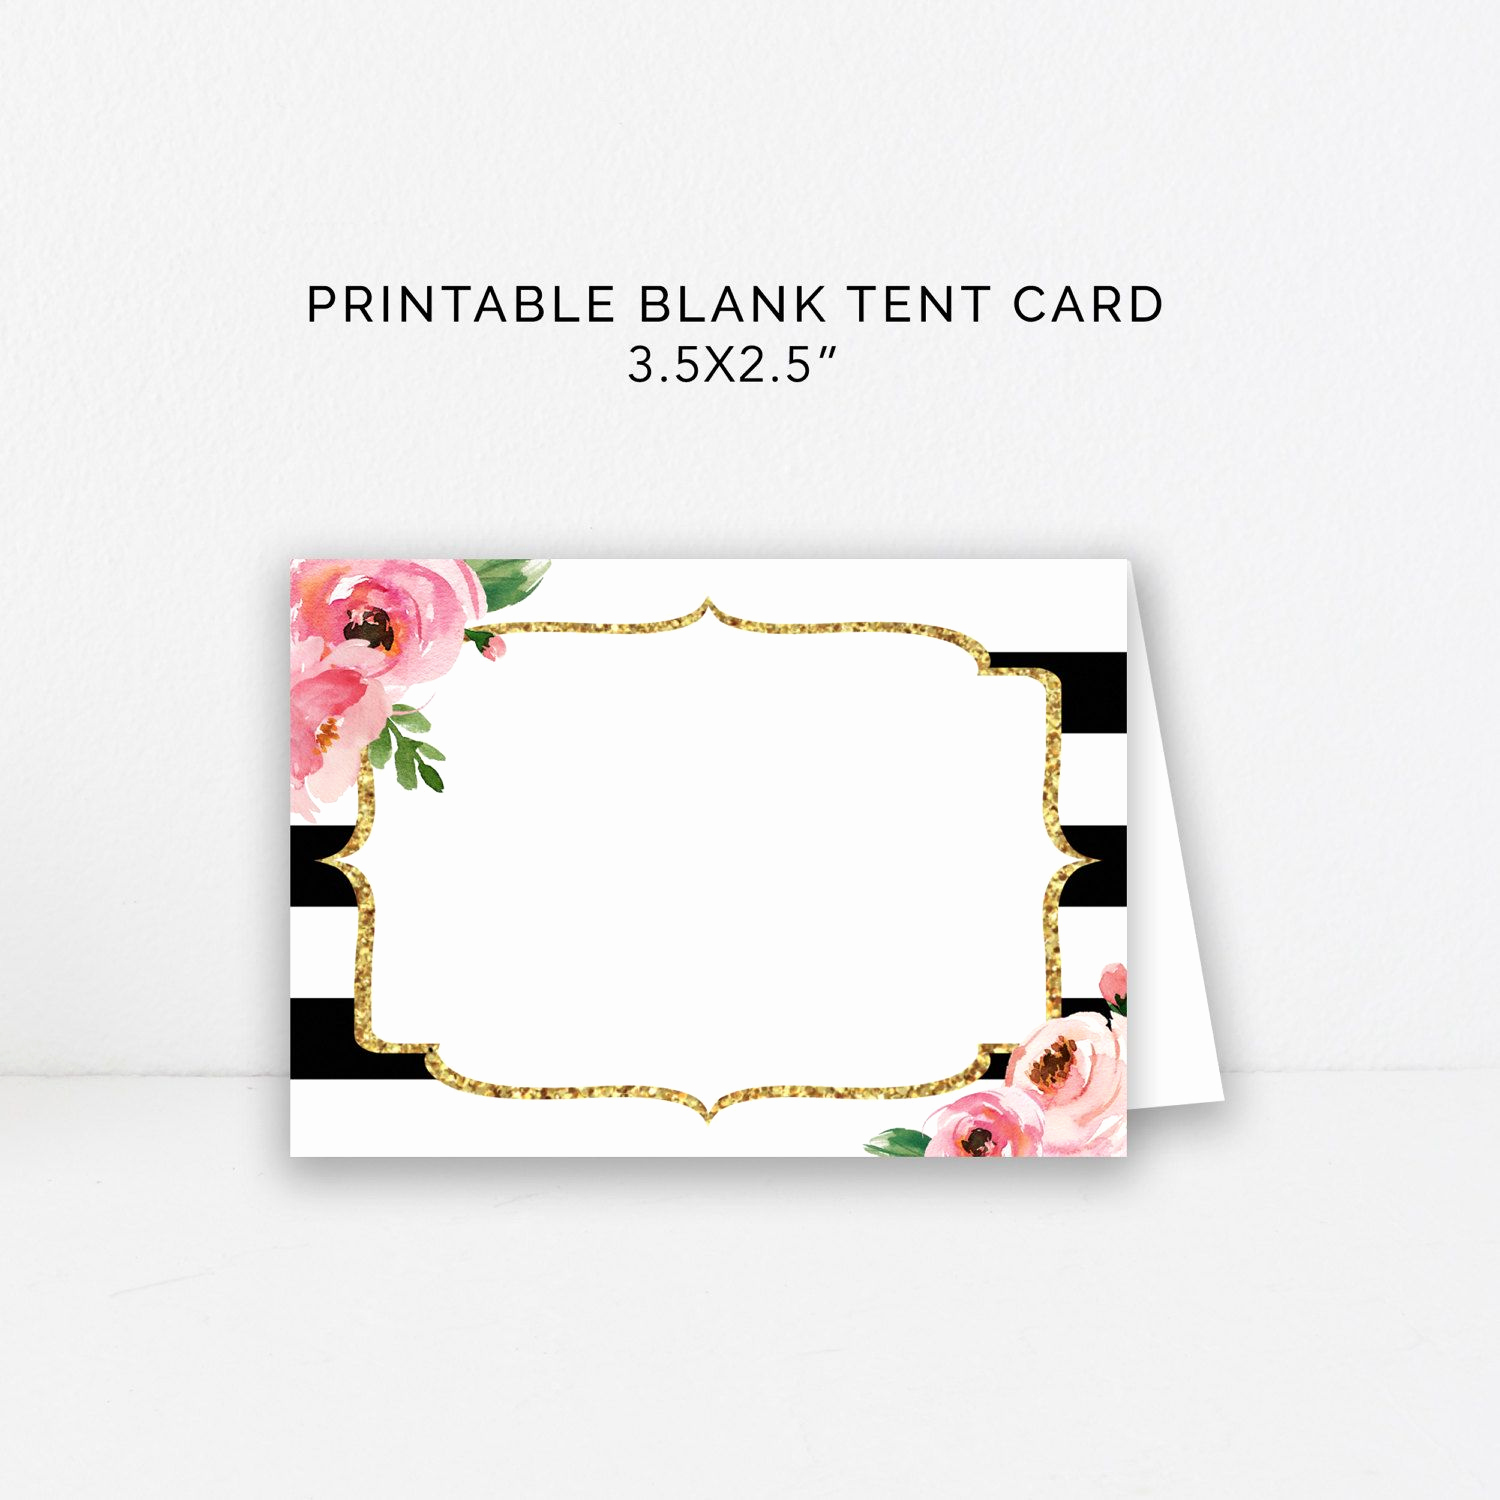 Kate Spade Invitation Template Free Fresh Food Tent Card Editable Template Diy Kate Place Cards